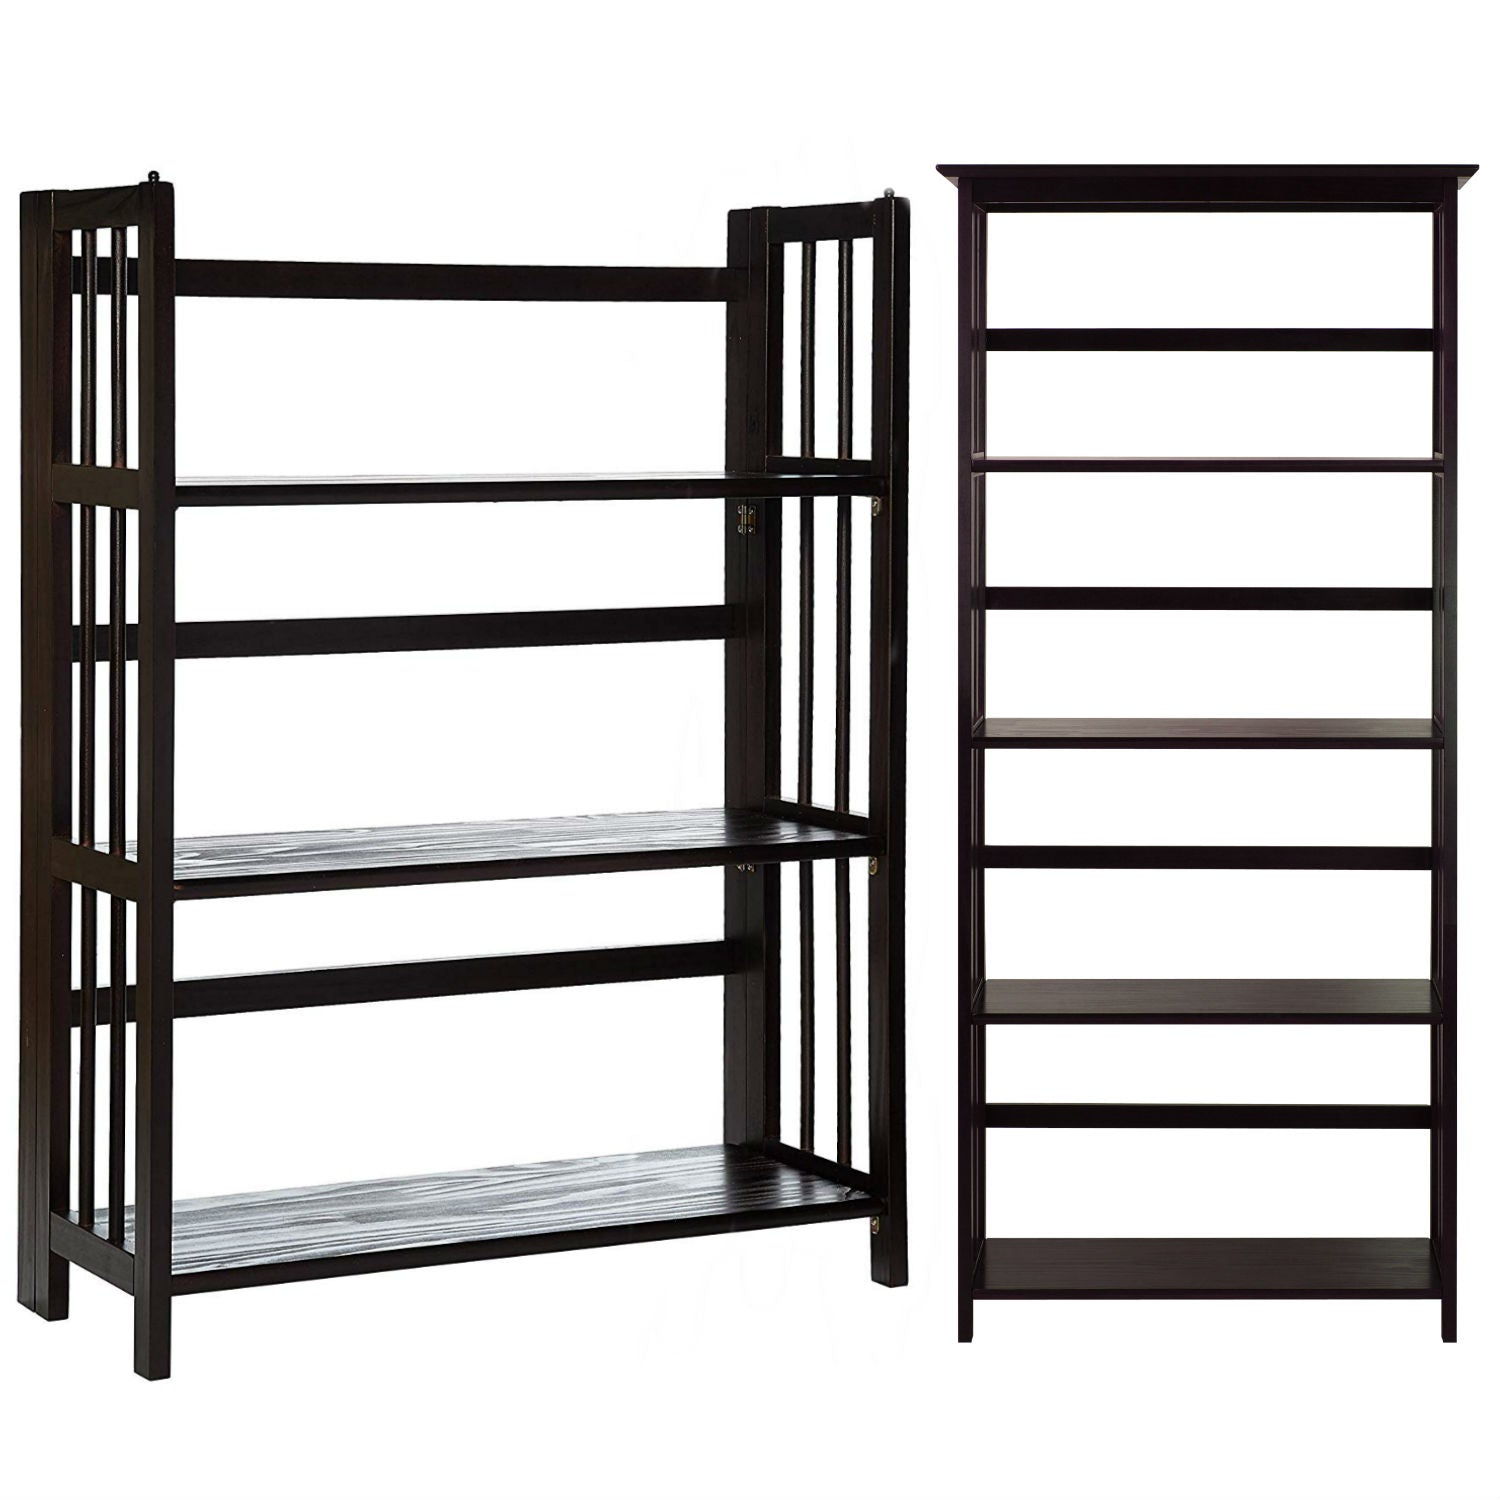 "Casual Home Mission Style 5-Shelf Bookcase with 3-Shelf Folding Stackable Bookcase (27.5"" Wide)-Espresso"